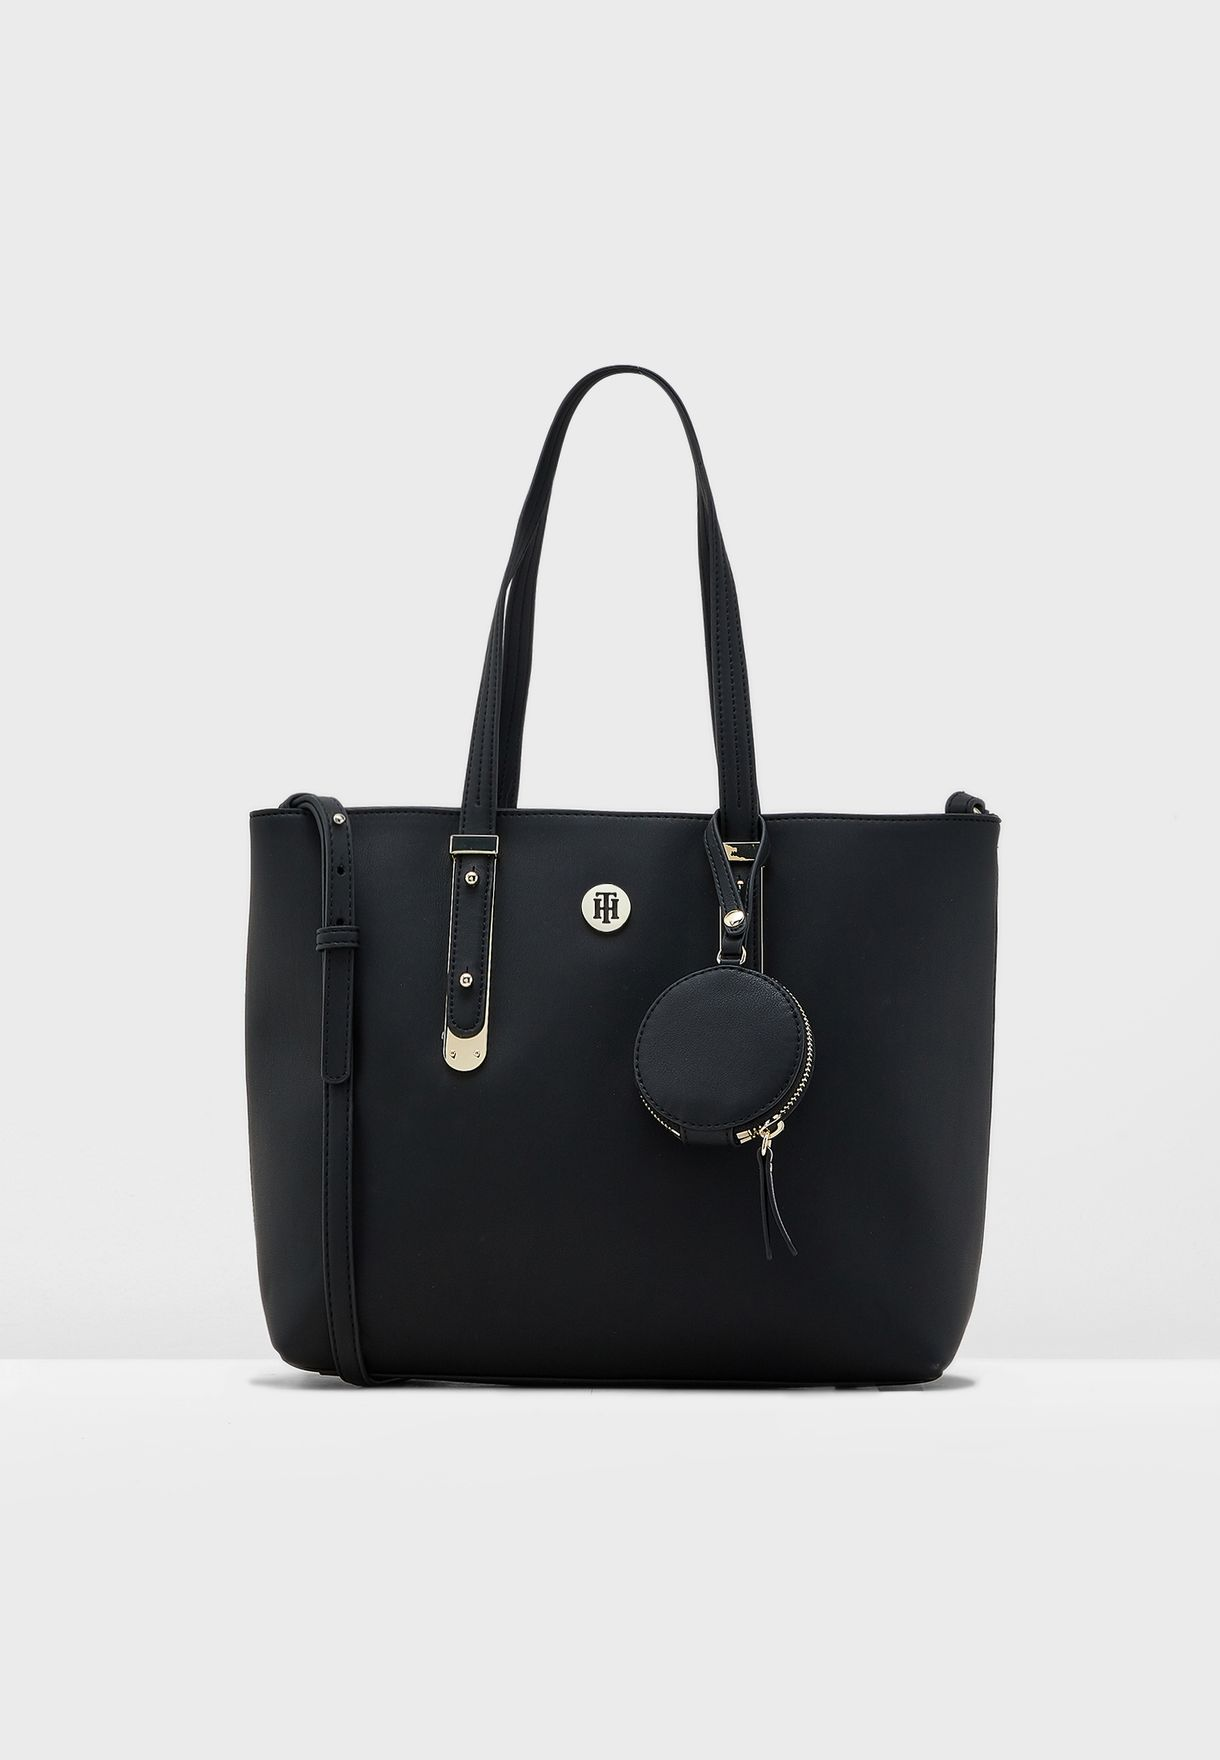 34a11d6f2 Shop Tommy Hilfiger black Modern Hardware Tote AW0AW06918 for Women ...